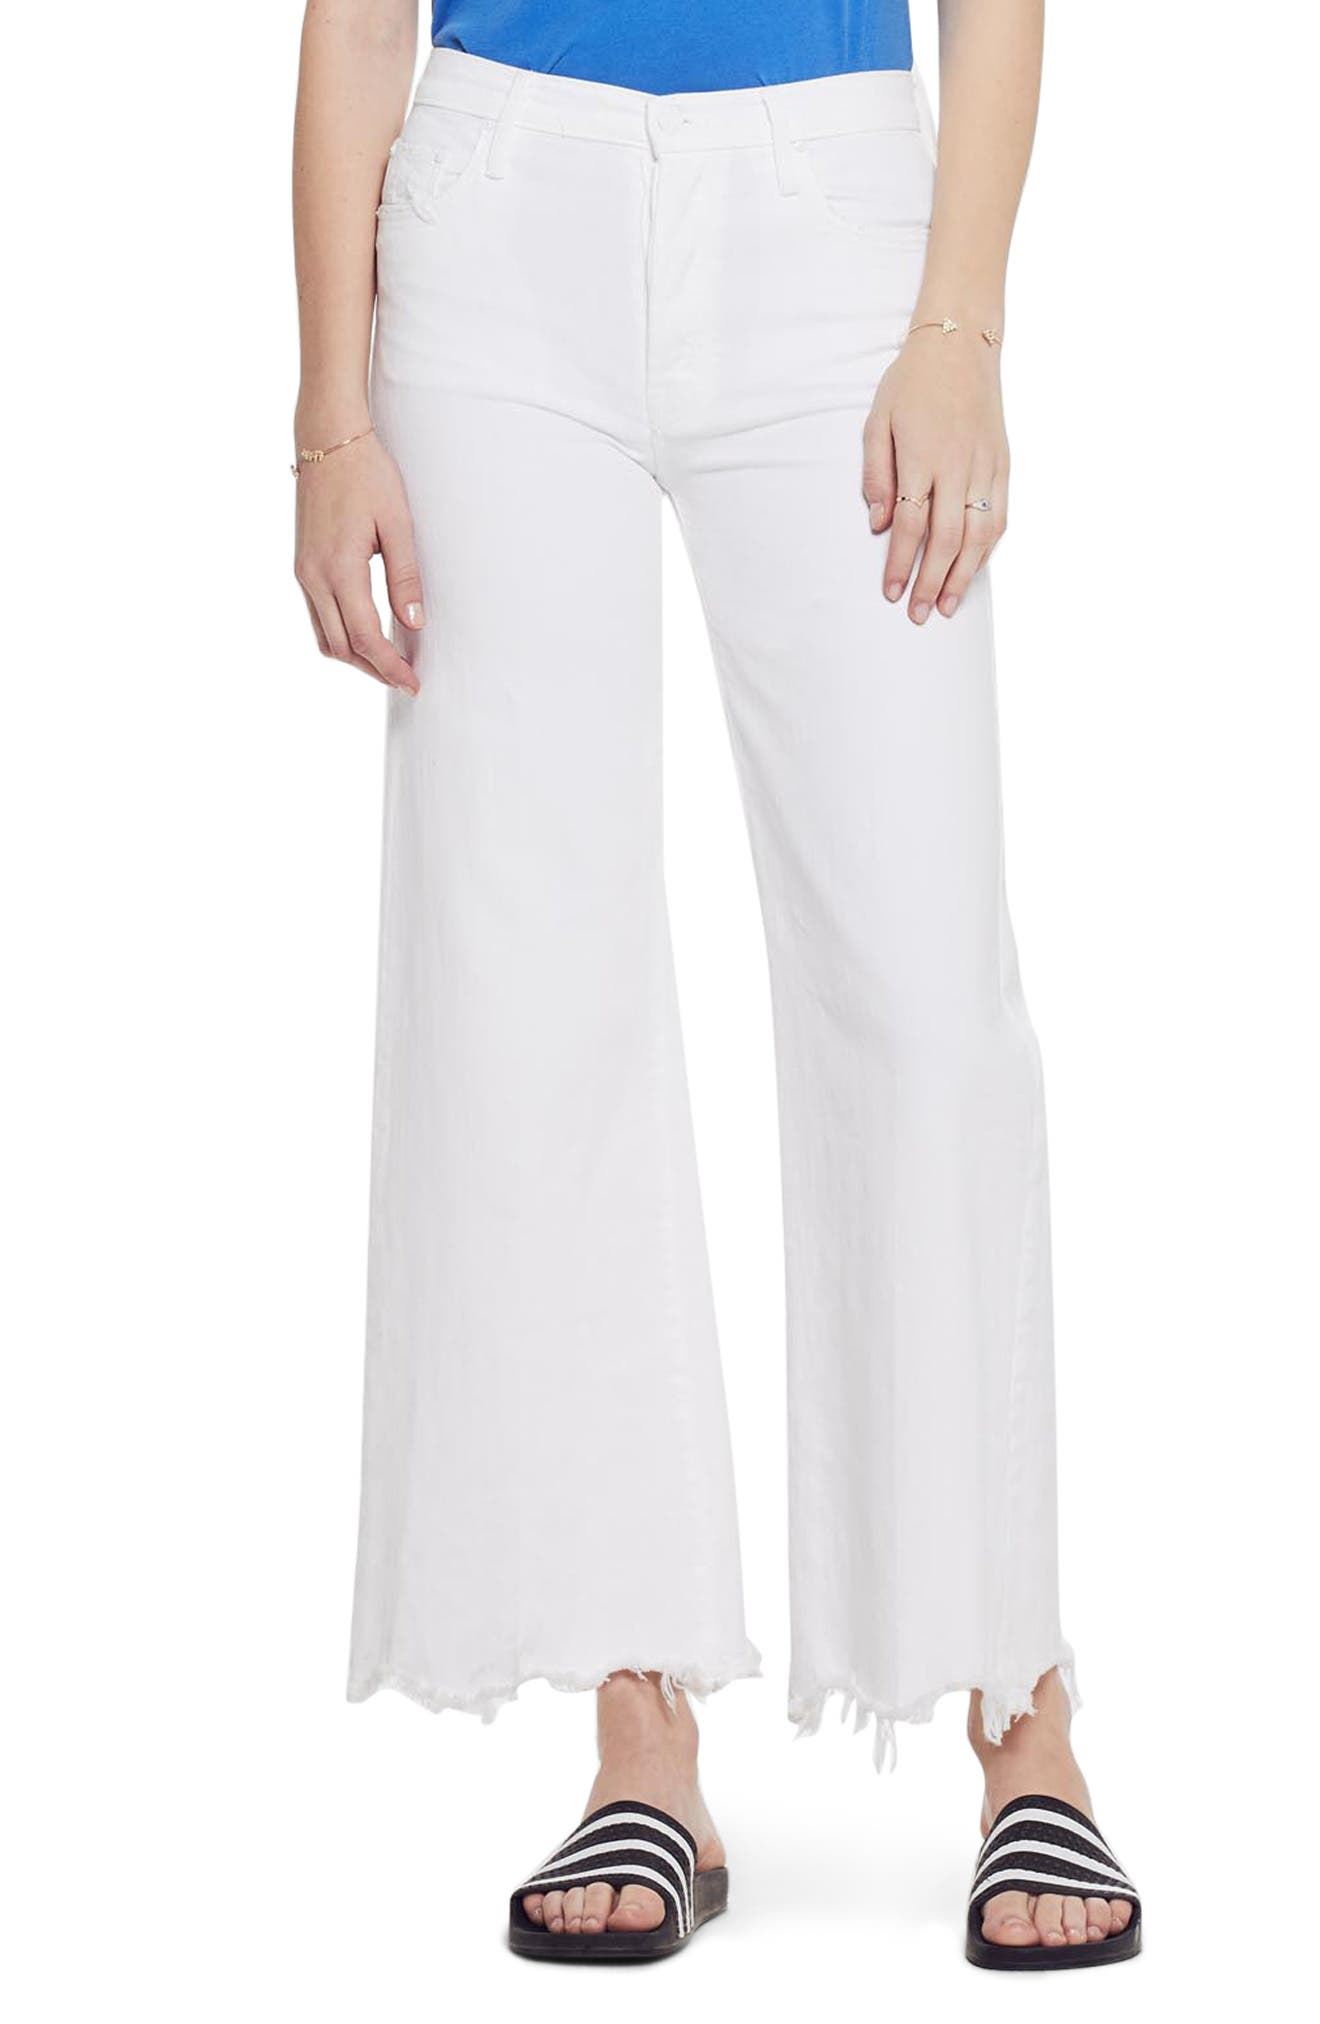 MOTHER The Tomcat Chew Ripped High Waist Flare Jeans, Main, color, ALMOST INNOCENT